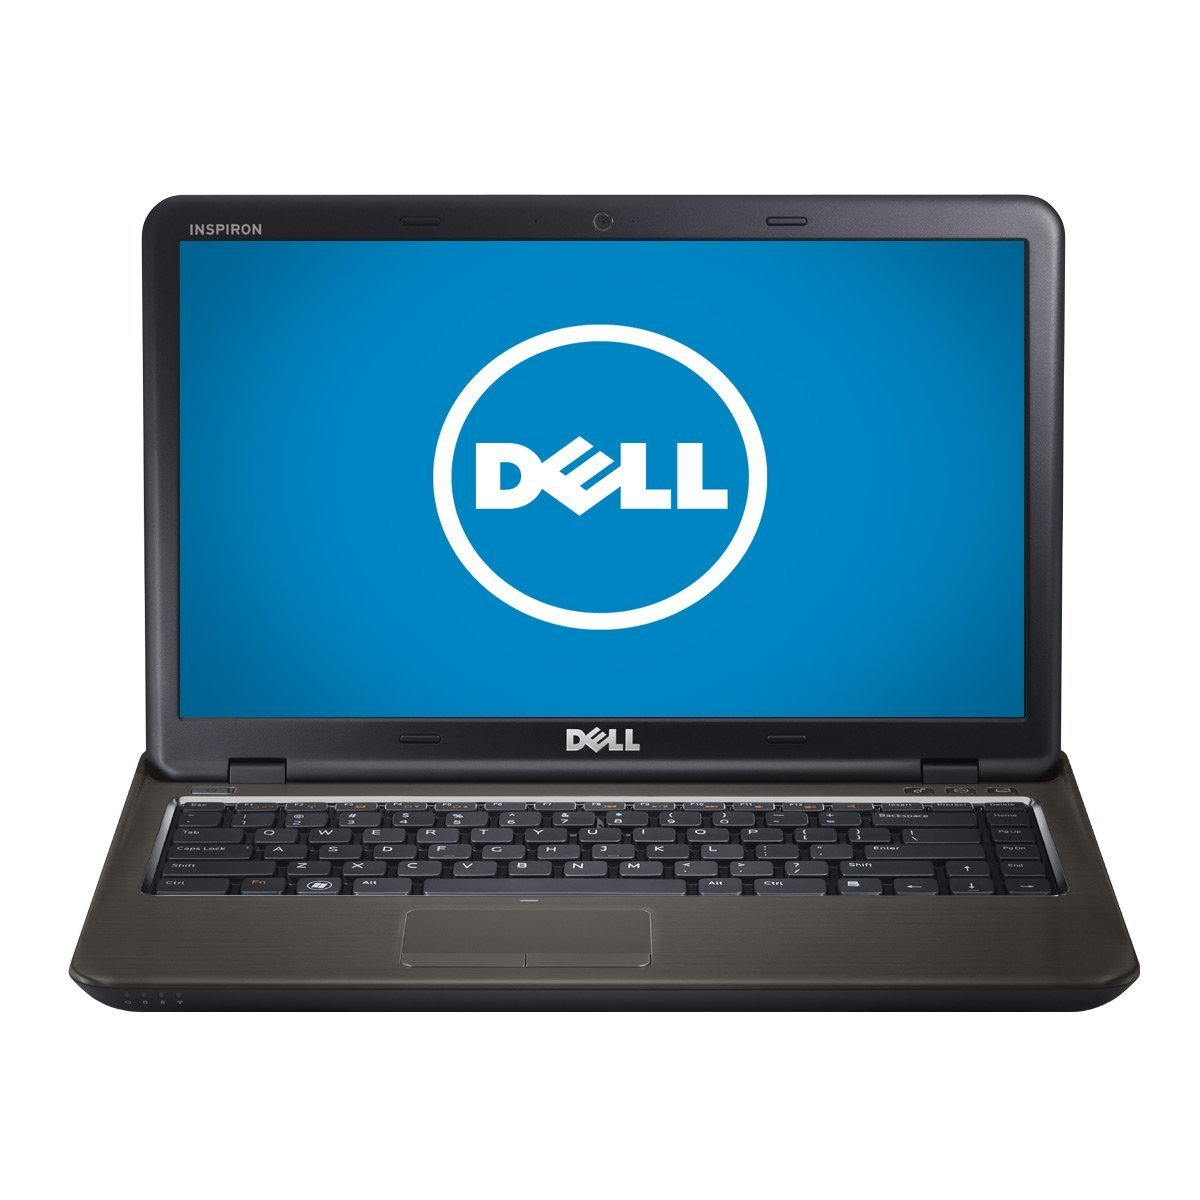 Laptop DELL INSPIRON INS 3458-TXTGH2 Black Core i3 5005U, 2.0 Ghz, 4GB, 500GB, Intel HD5500, 14,0